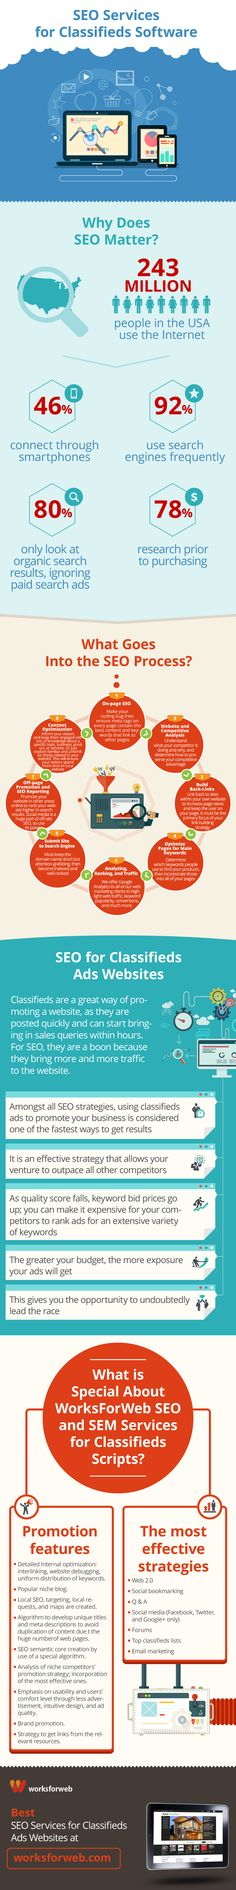 SEO Services for Classifieds Software   #infographic #SEO